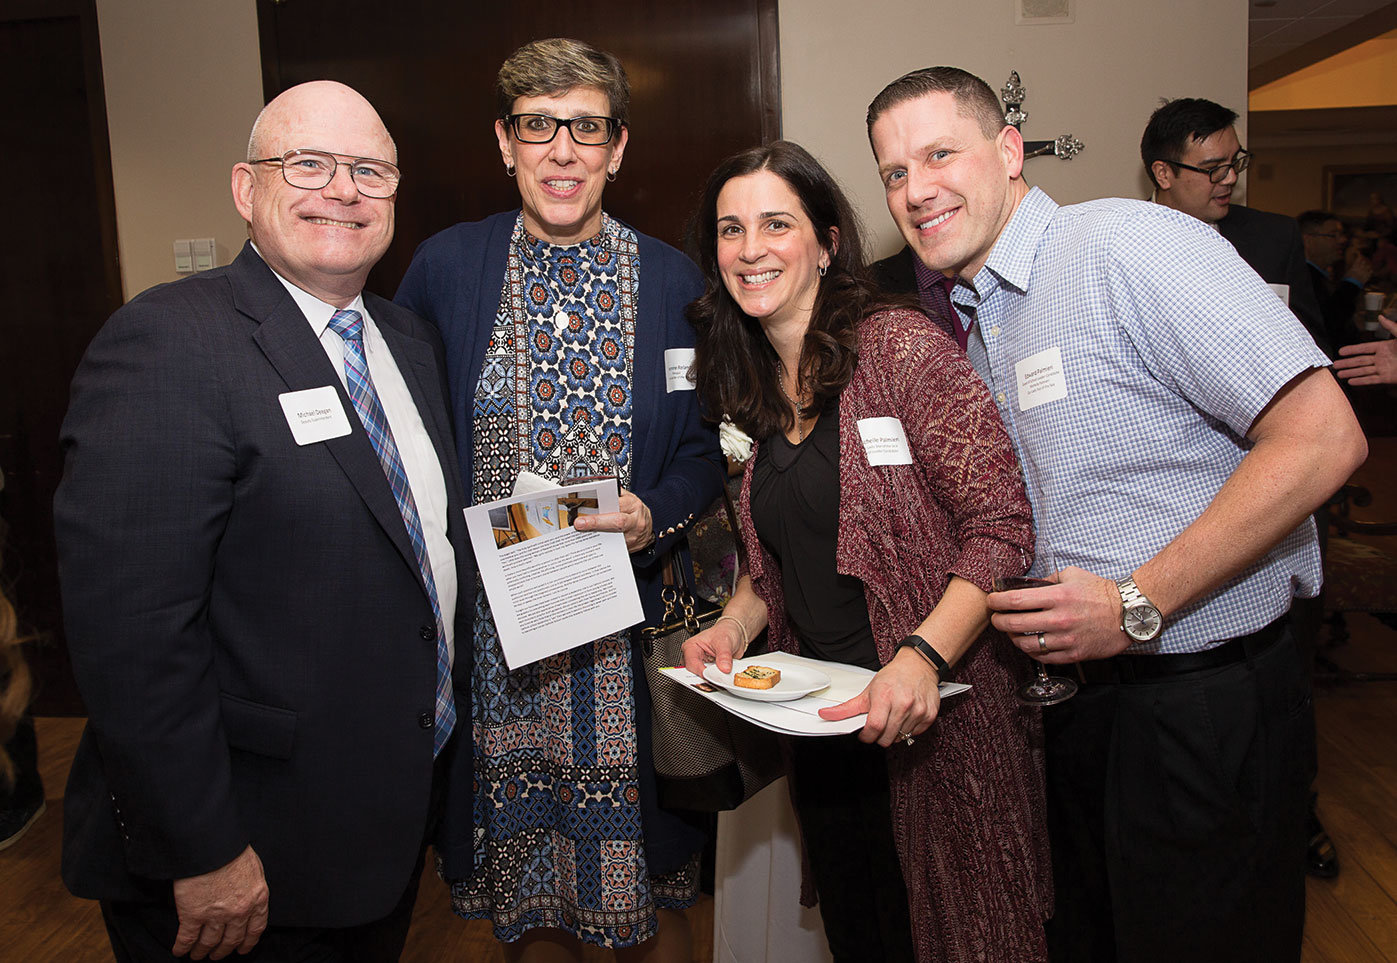 Michael Deegan, far left, deputy superintendent of schools in the archdiocese, joins Jeannine Roland, principal of Our Lady Star of the Sea, Staten Island; Michelle Palmieri, teacher at Our Lady Star of the Sea; and Edward Palmieri, Ms. Palmieri's husband, at the Evening of Teacher Recognition and Call to Discernment at the New York Catholic Center in Manhattan Jan. 24. Ms. Palmieri was one of more than 40 distinguished teachers in the archdiocese invited to apply for a Curran Fellowship.